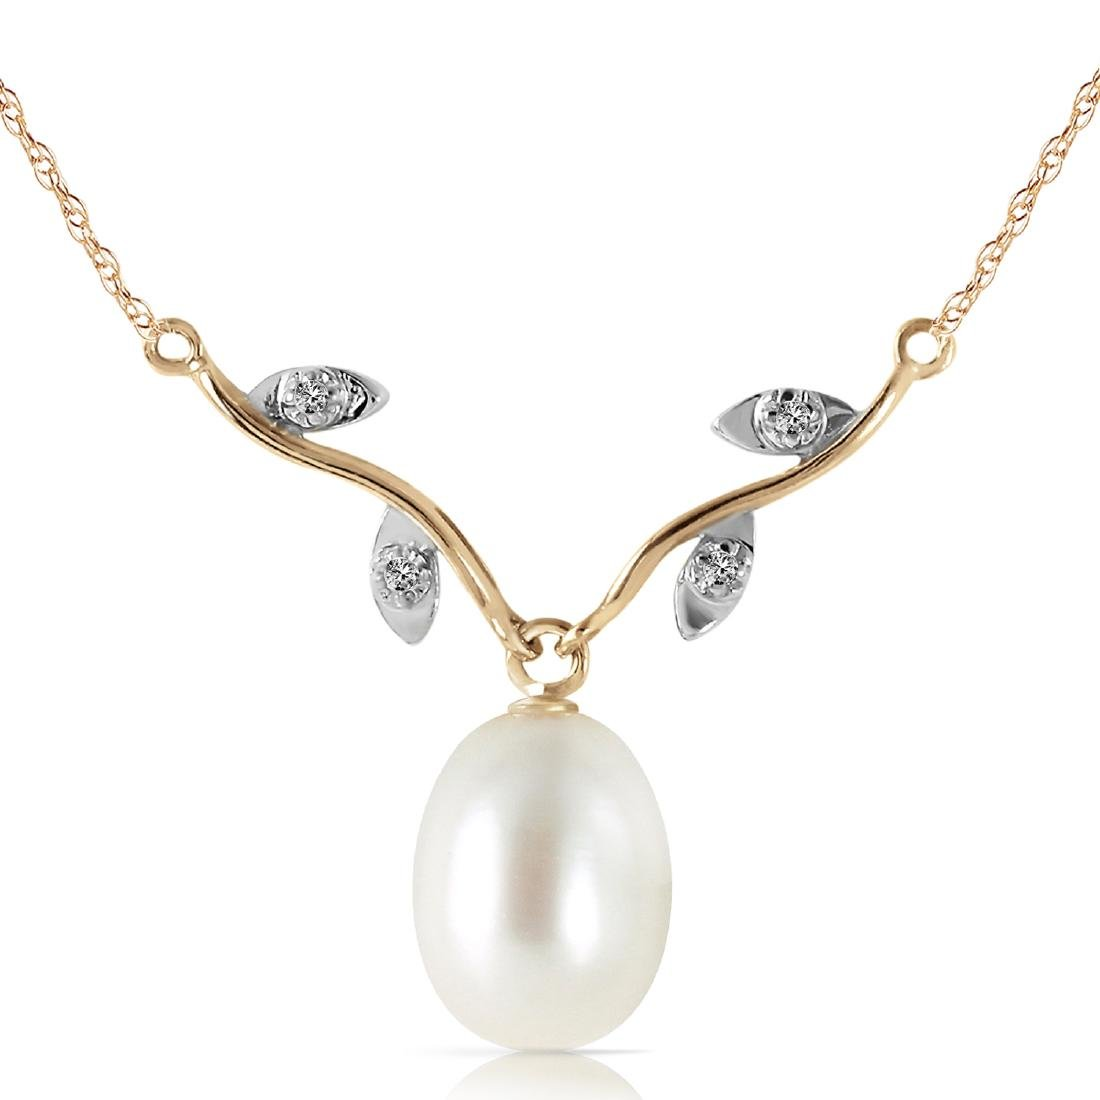 Genuine 4.02 ctw Pearl & Diamond Necklace Jewelry 14KT